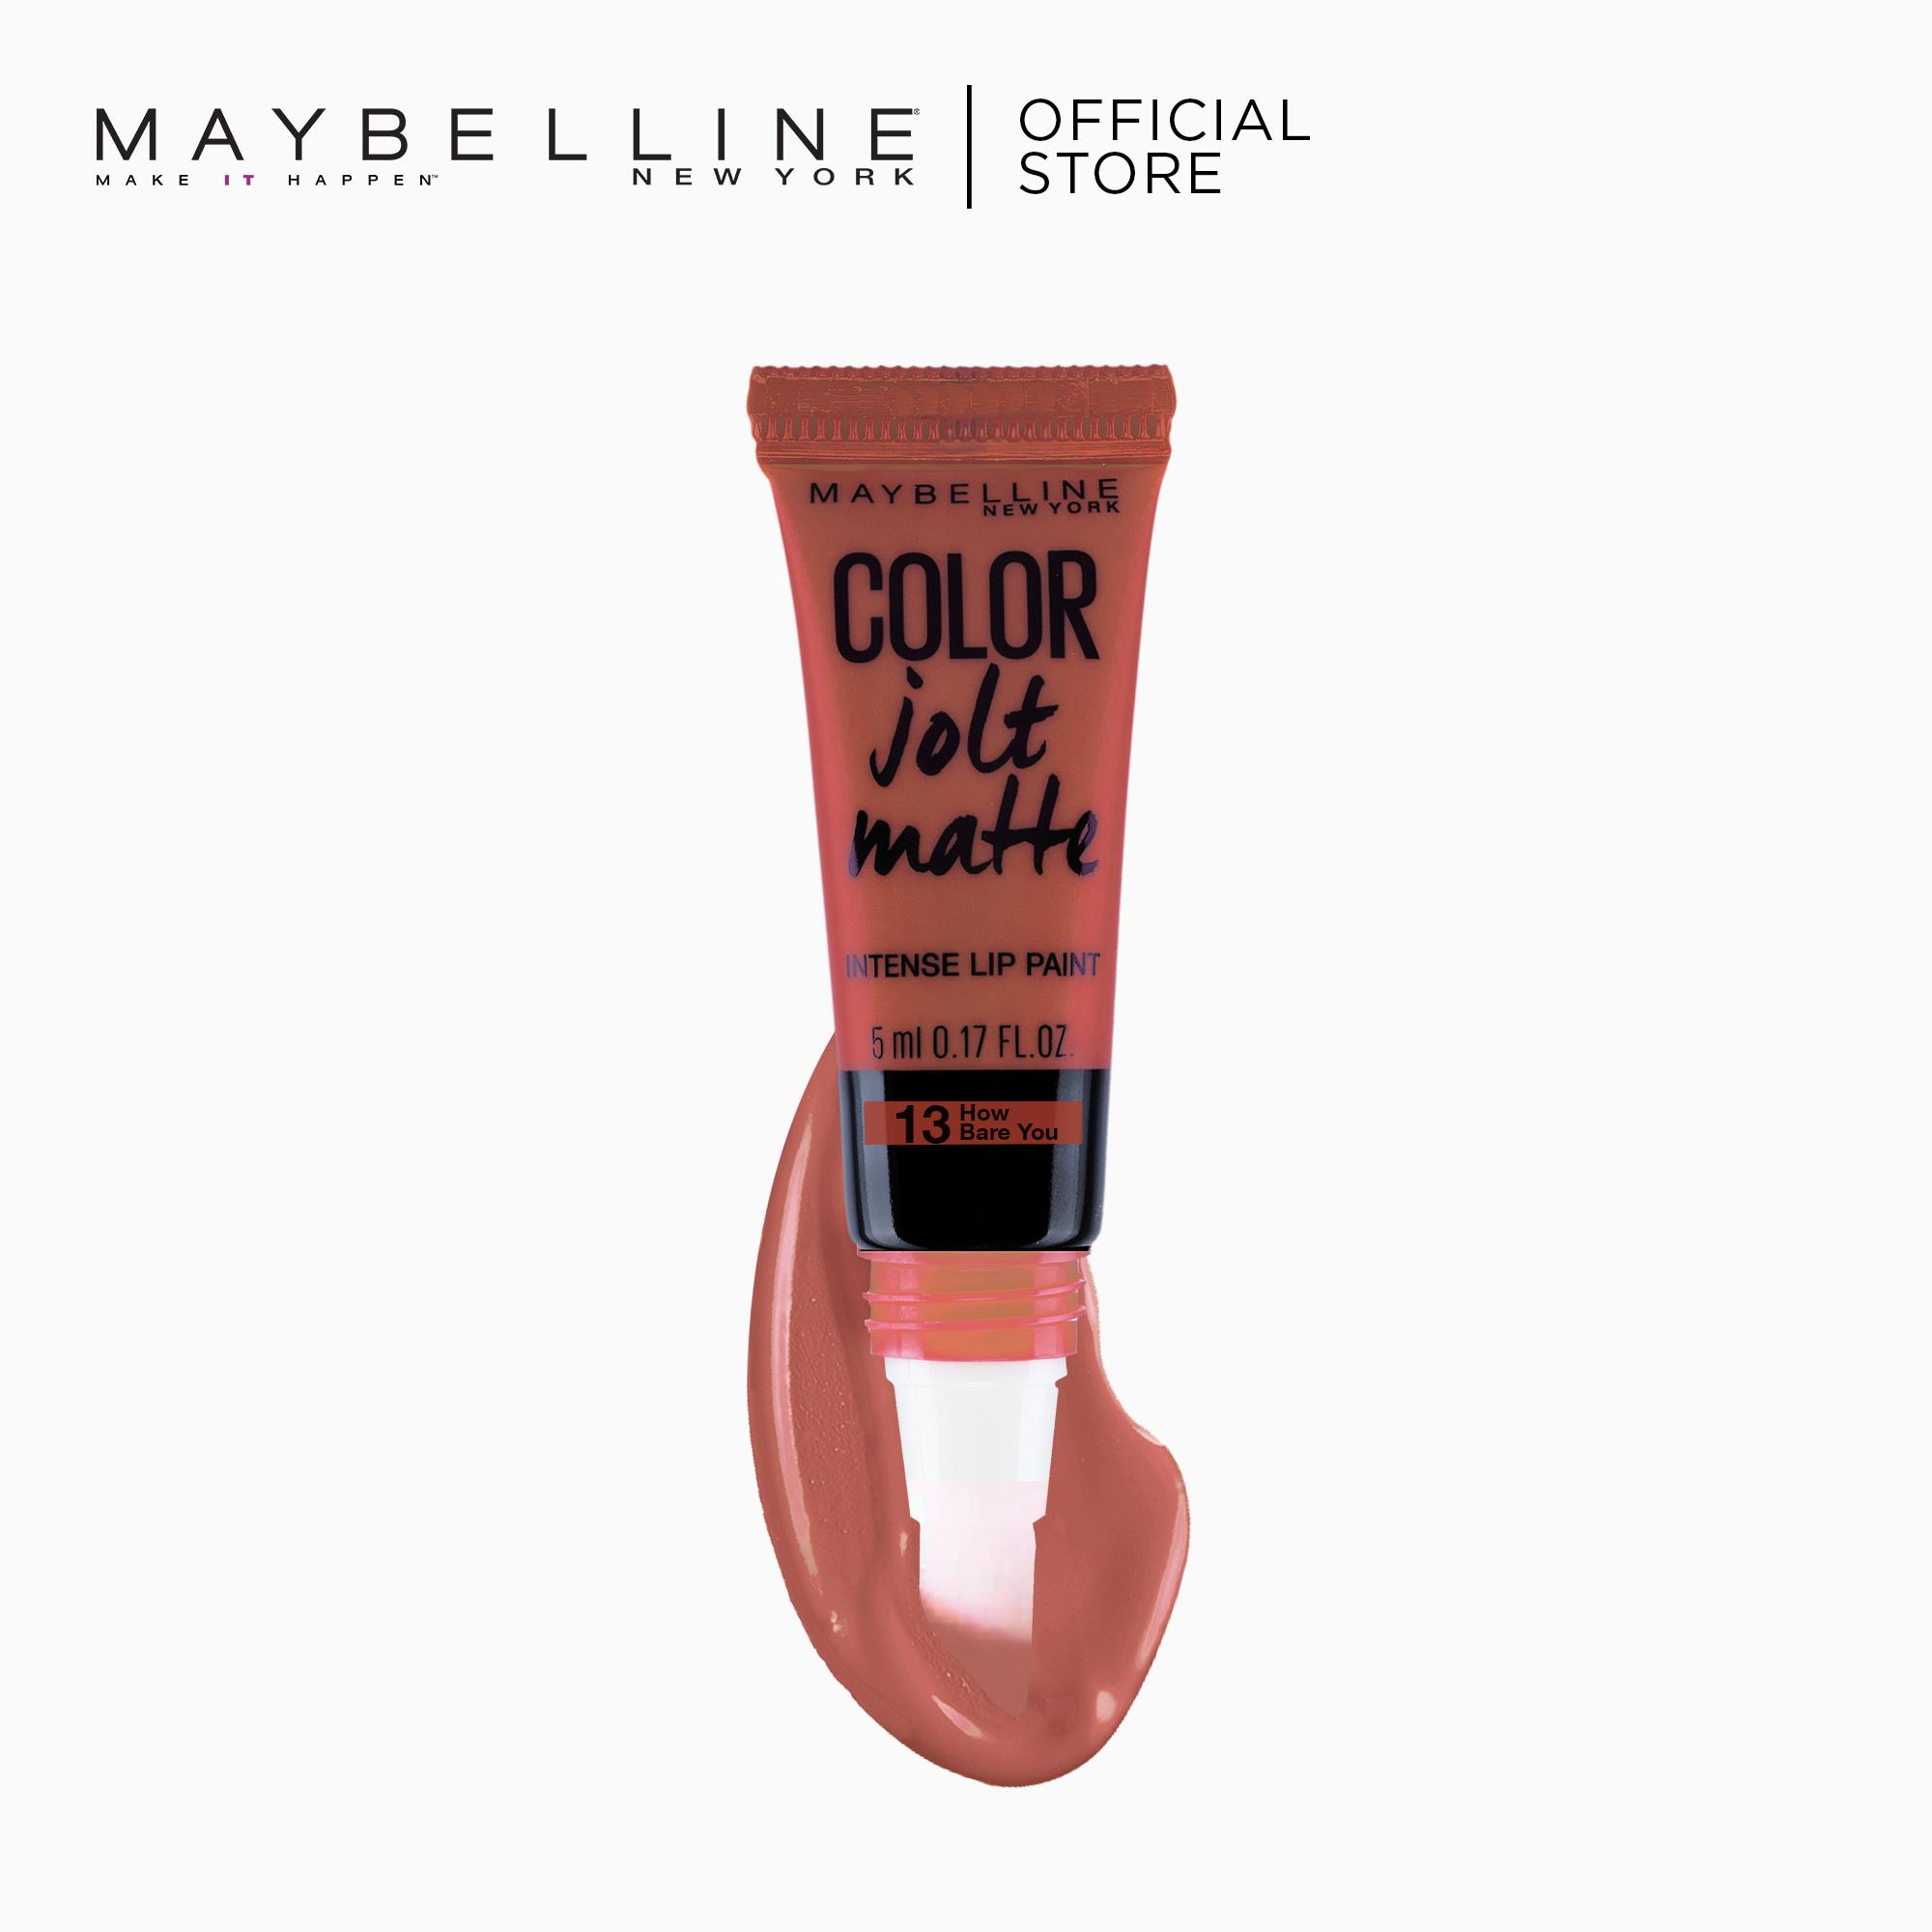 Color Jolt Matte Lip Paint – 13 How Bare You [#PaintItMatte] by Maybelline Lip Studio Philippines